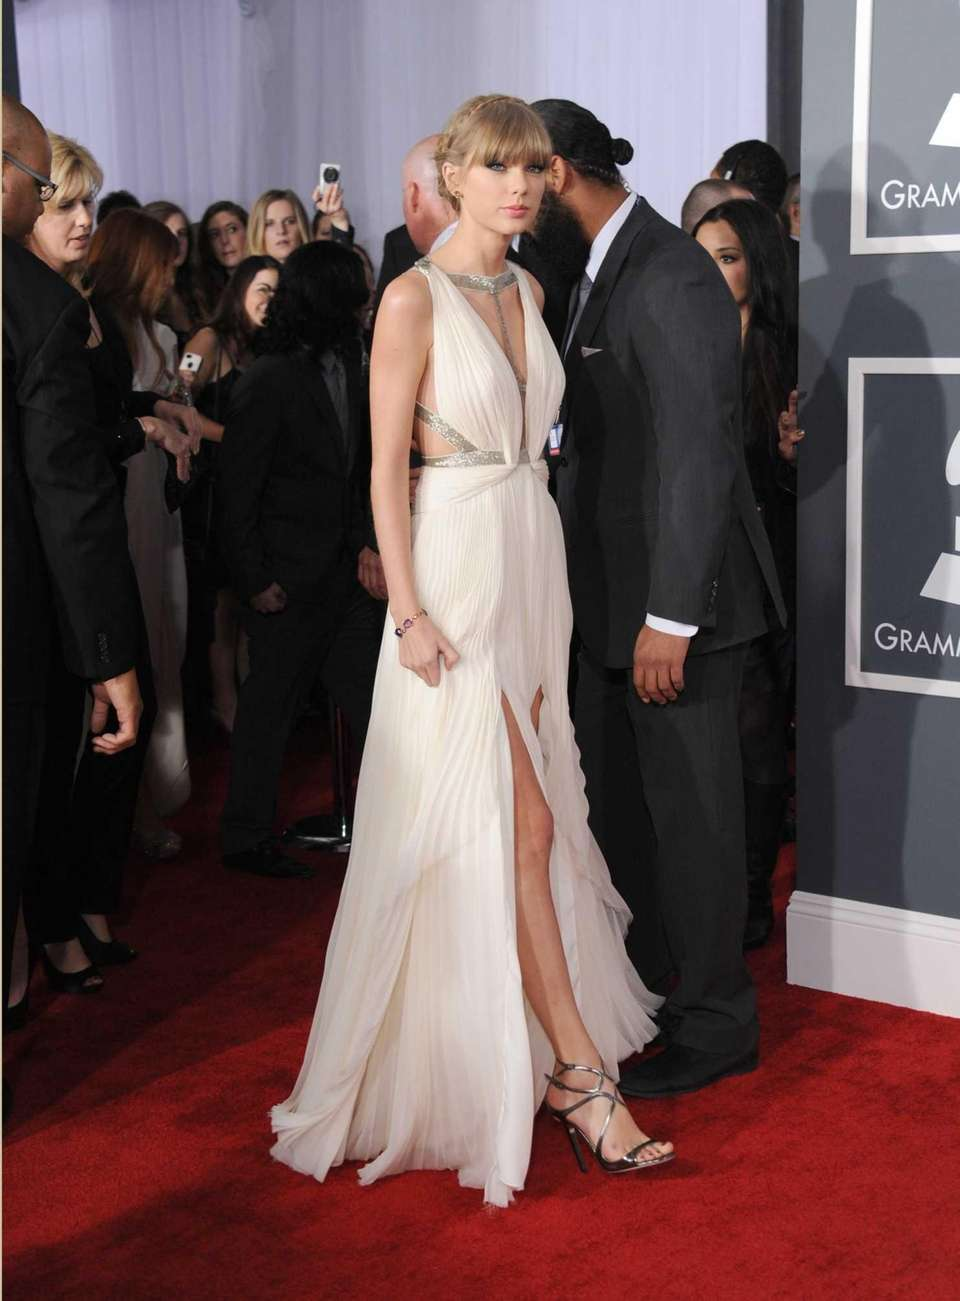 Taylor Swift arrives at the 55th Grammy Awards